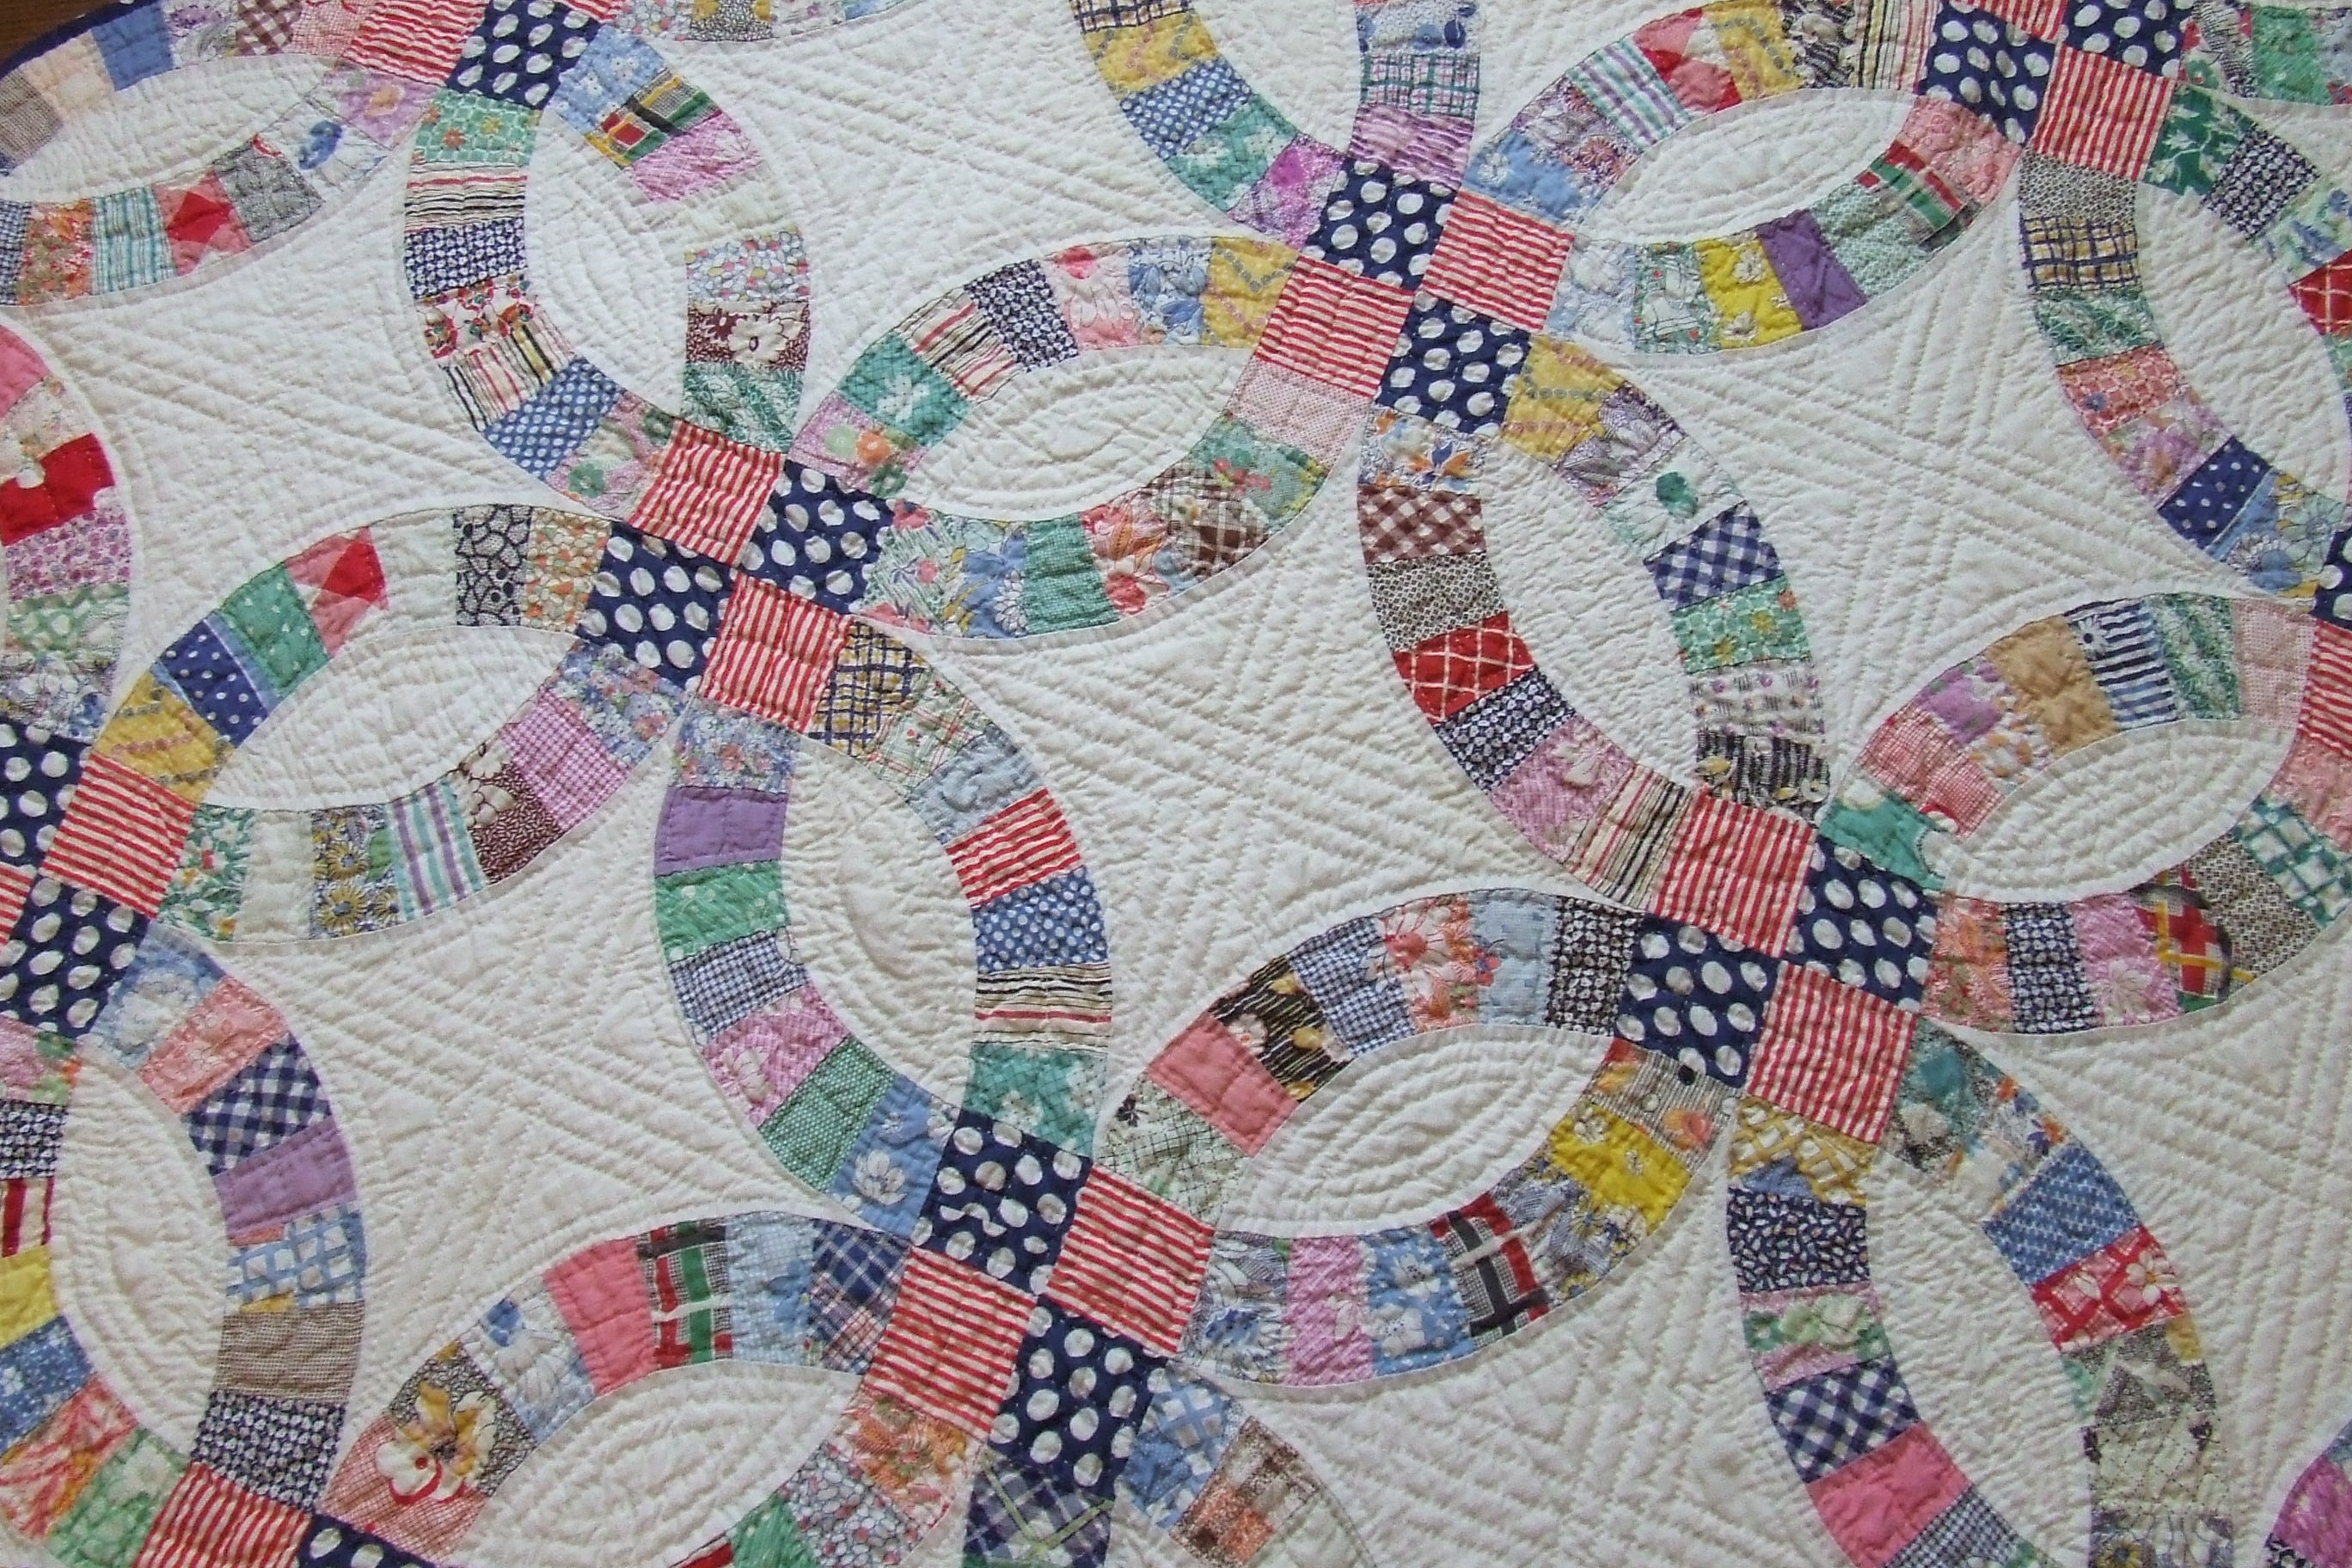 double wedding ring pattern tim latimer quilts etc With wedding ring pattern quilt